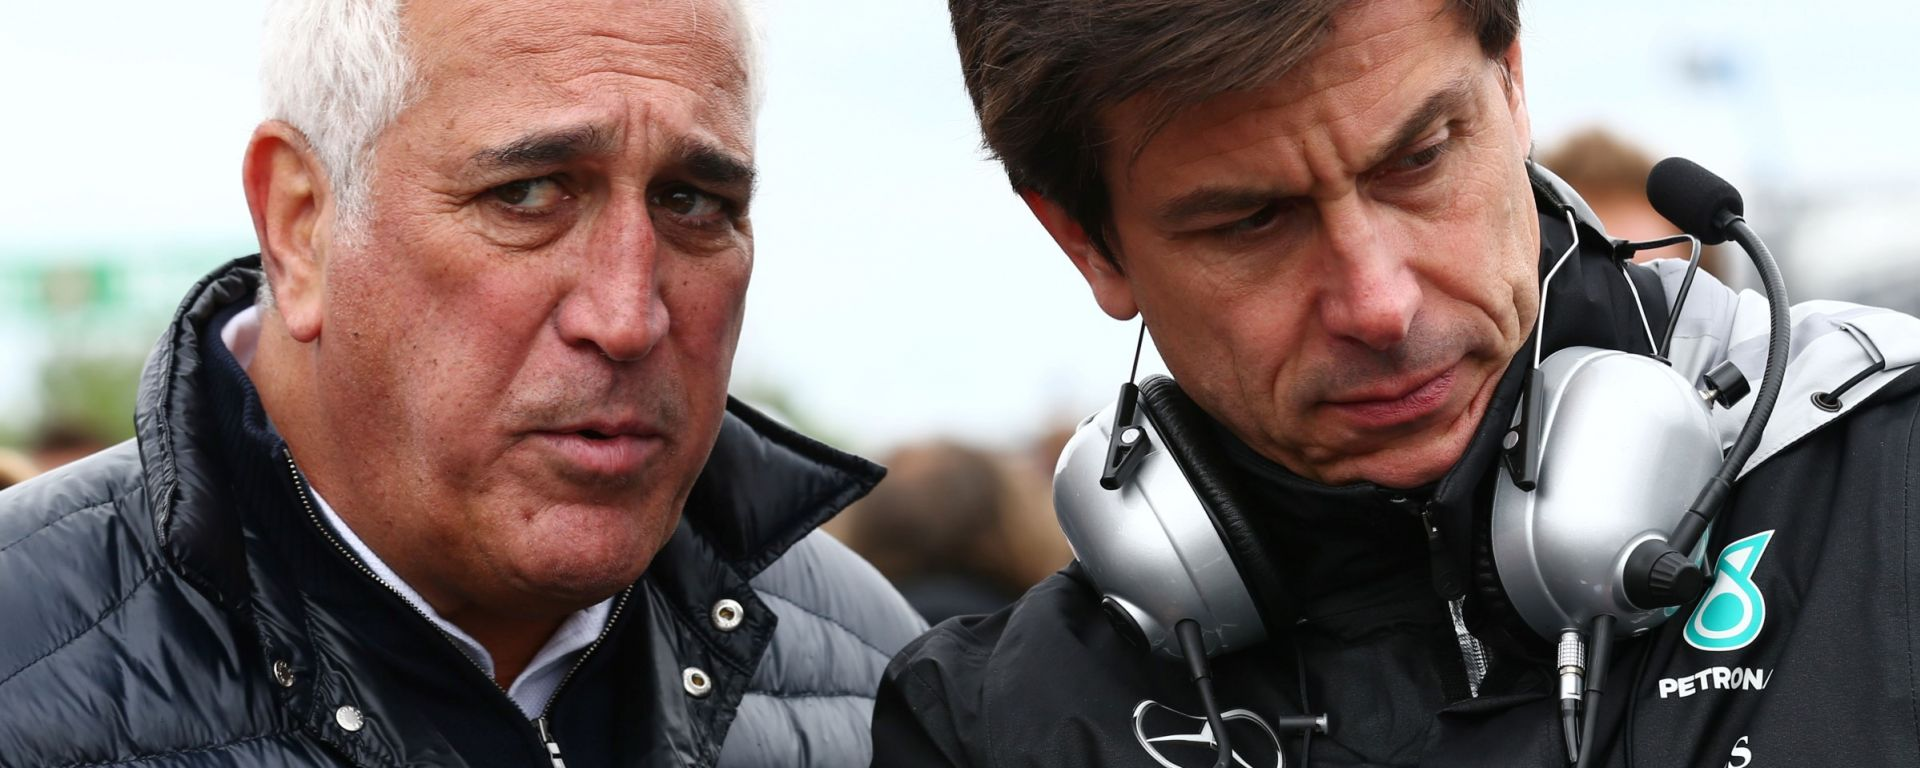 F1: Lawrence Stroll e Toto Wolff